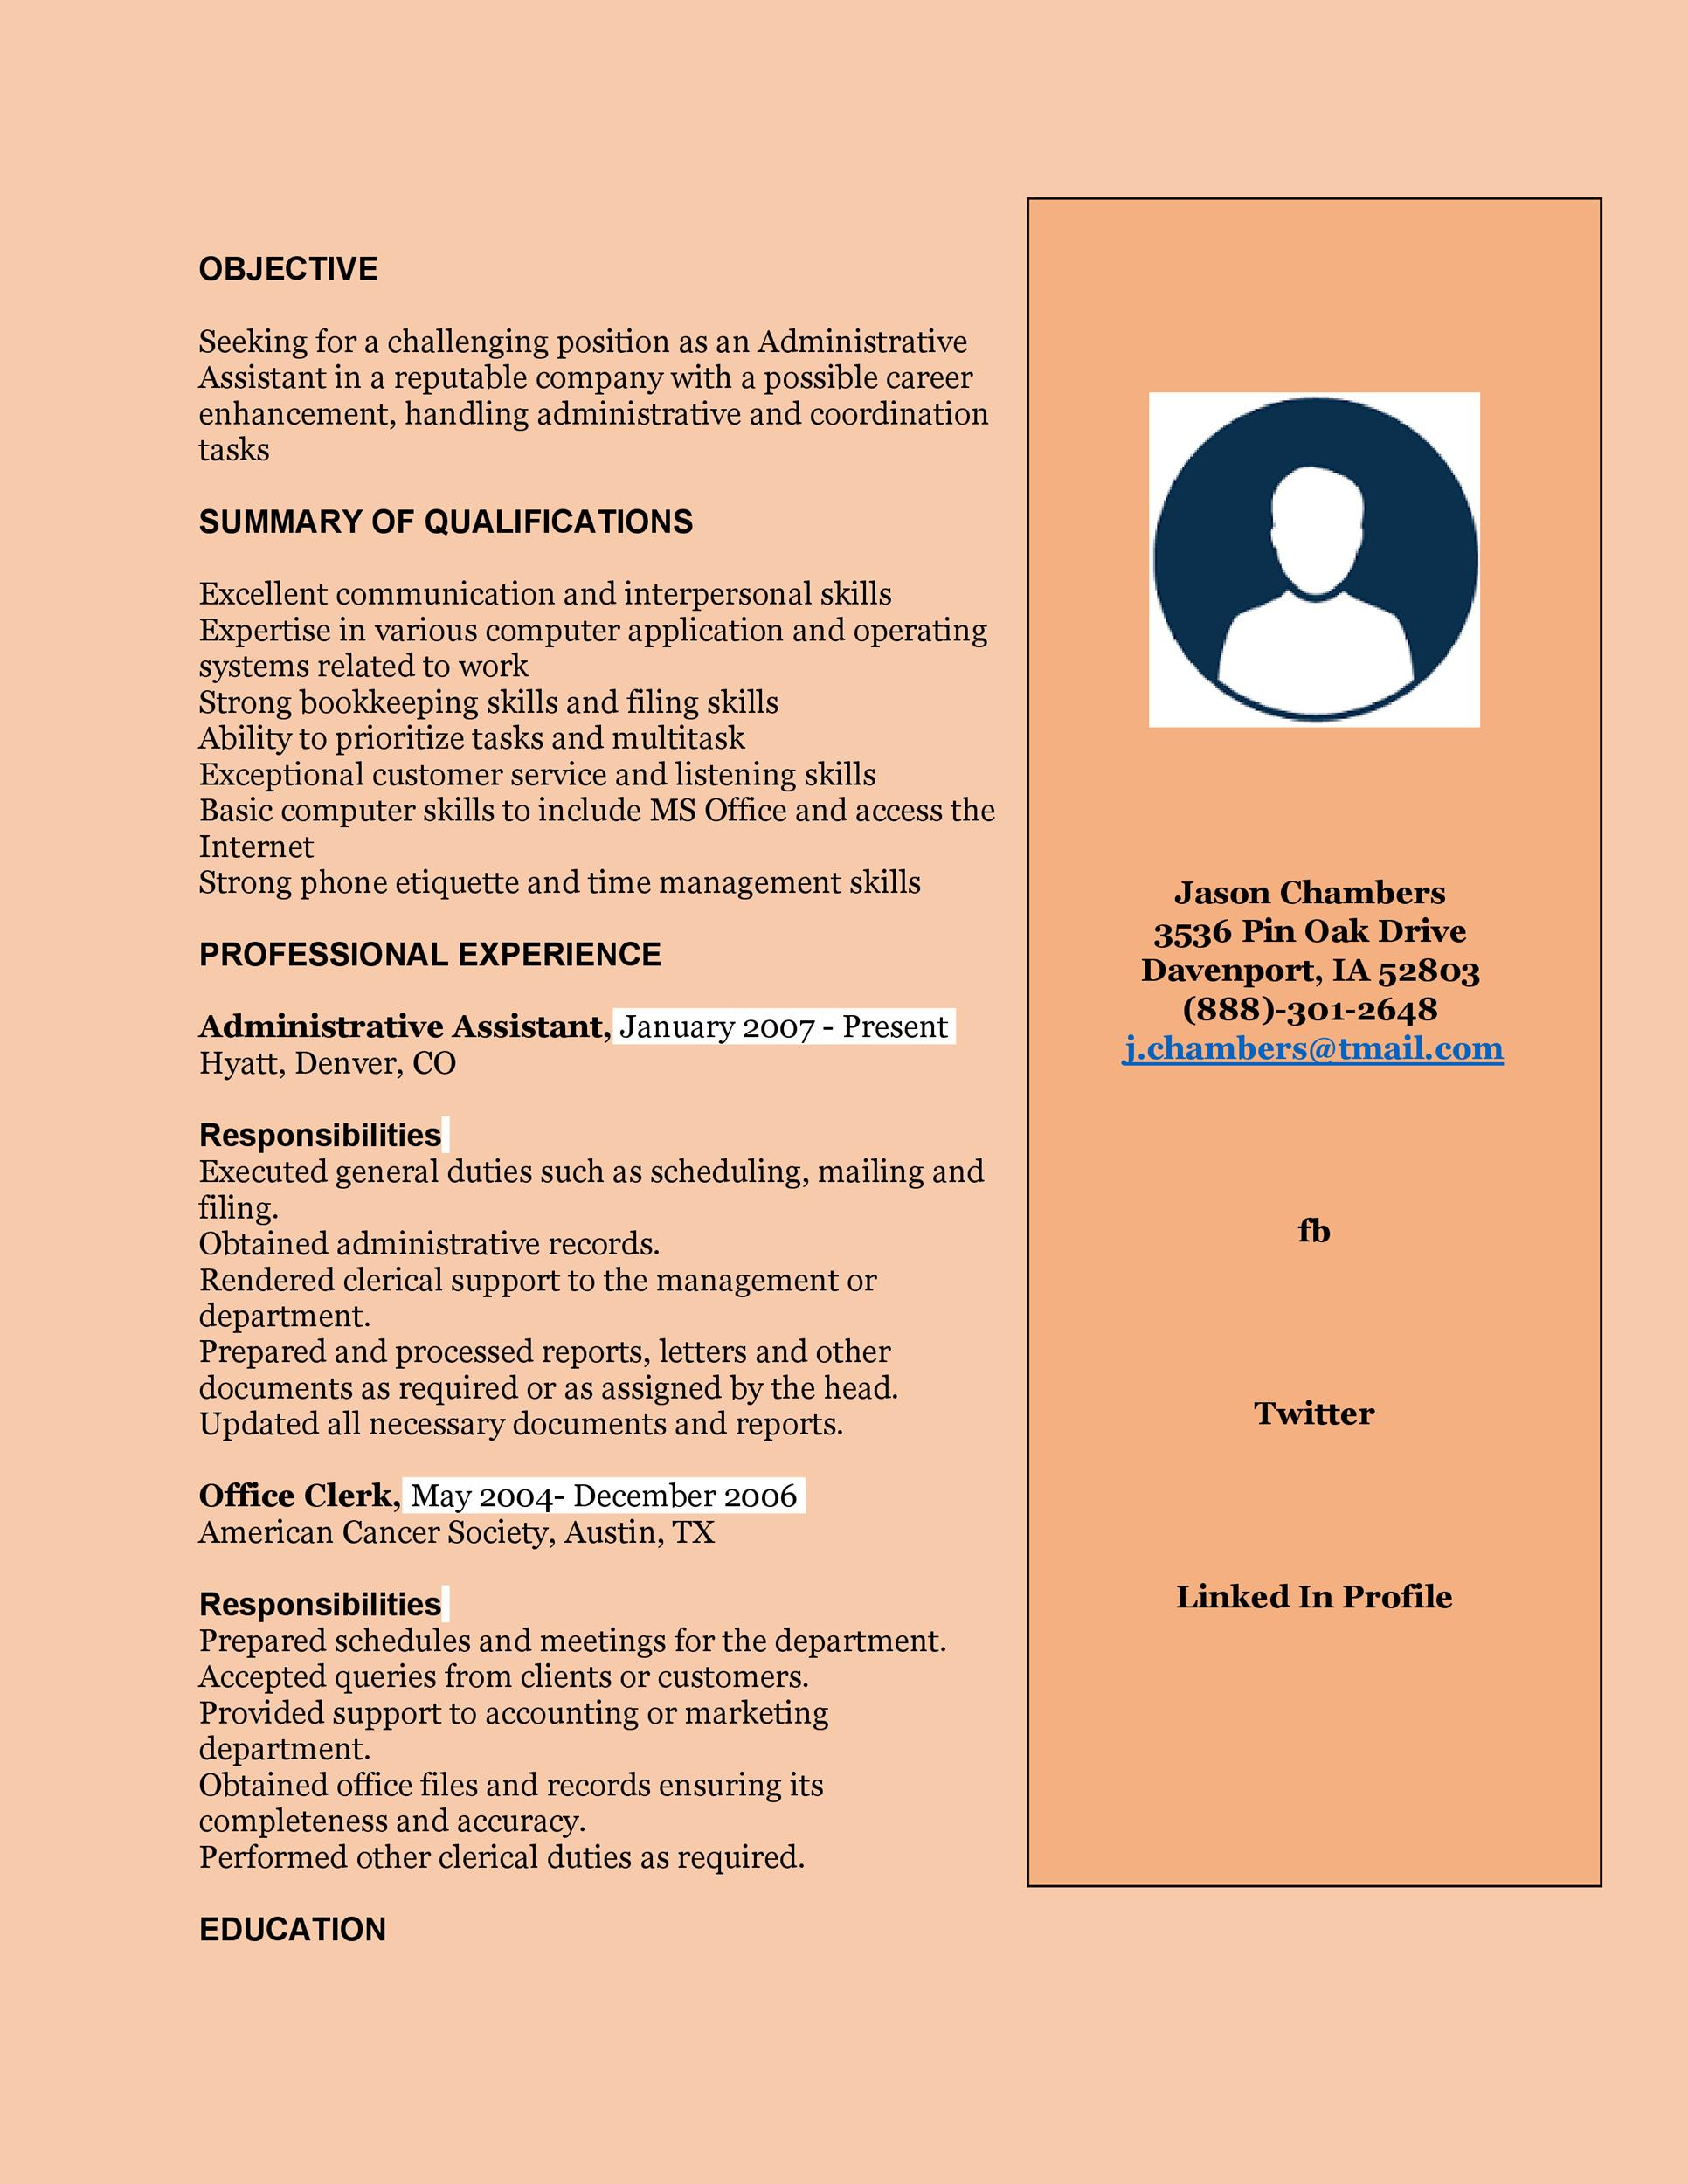 20 Free Administrative Assistant Resume Samples ᐅ Templatelab